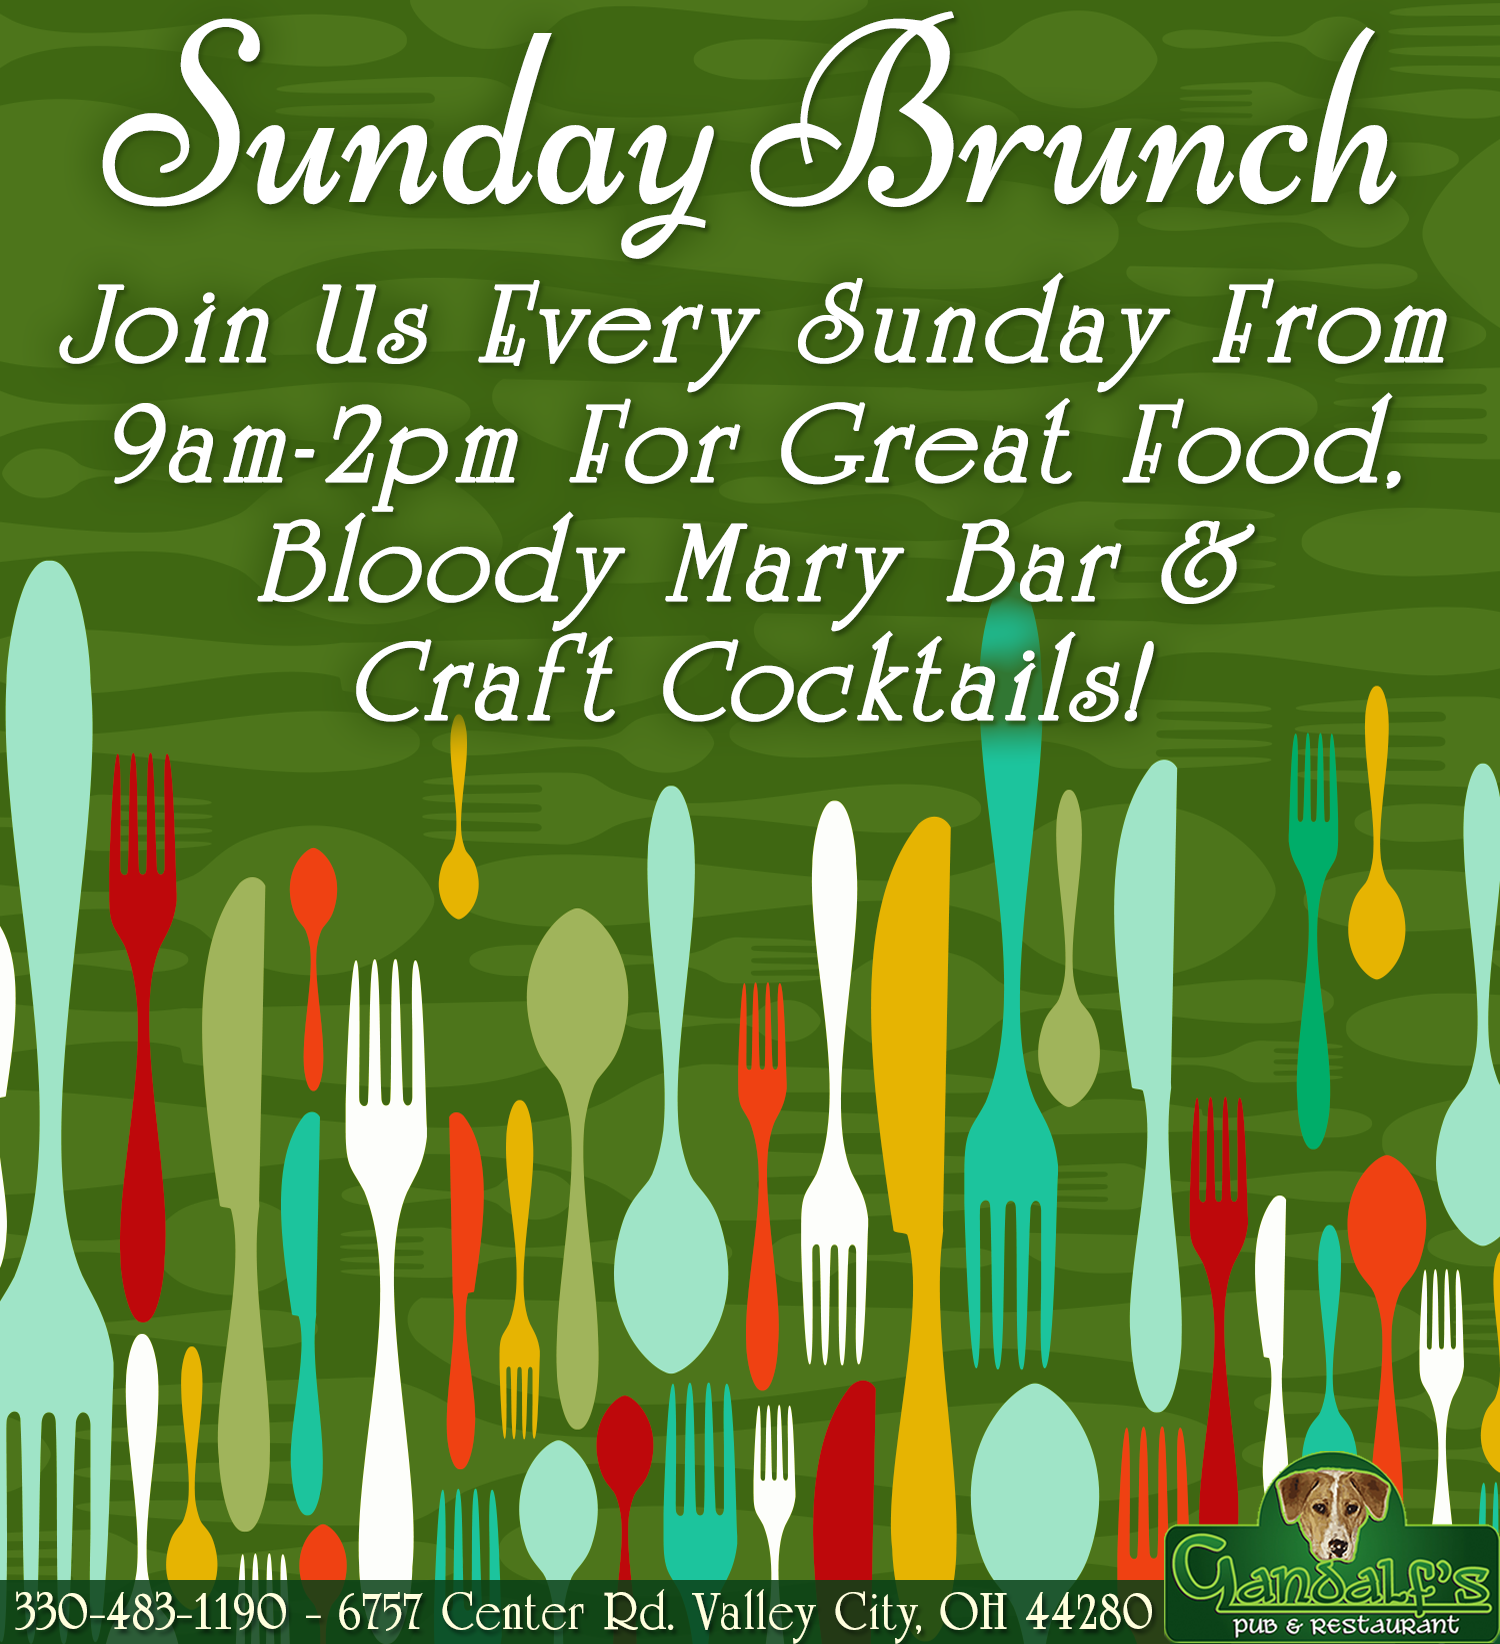 Sunday Brunch! Join us every sunday from 9am-2pm for great food, bloody mary bar & craft cocktails! 6757 center rd. valley city oh 44280 330-483-1190